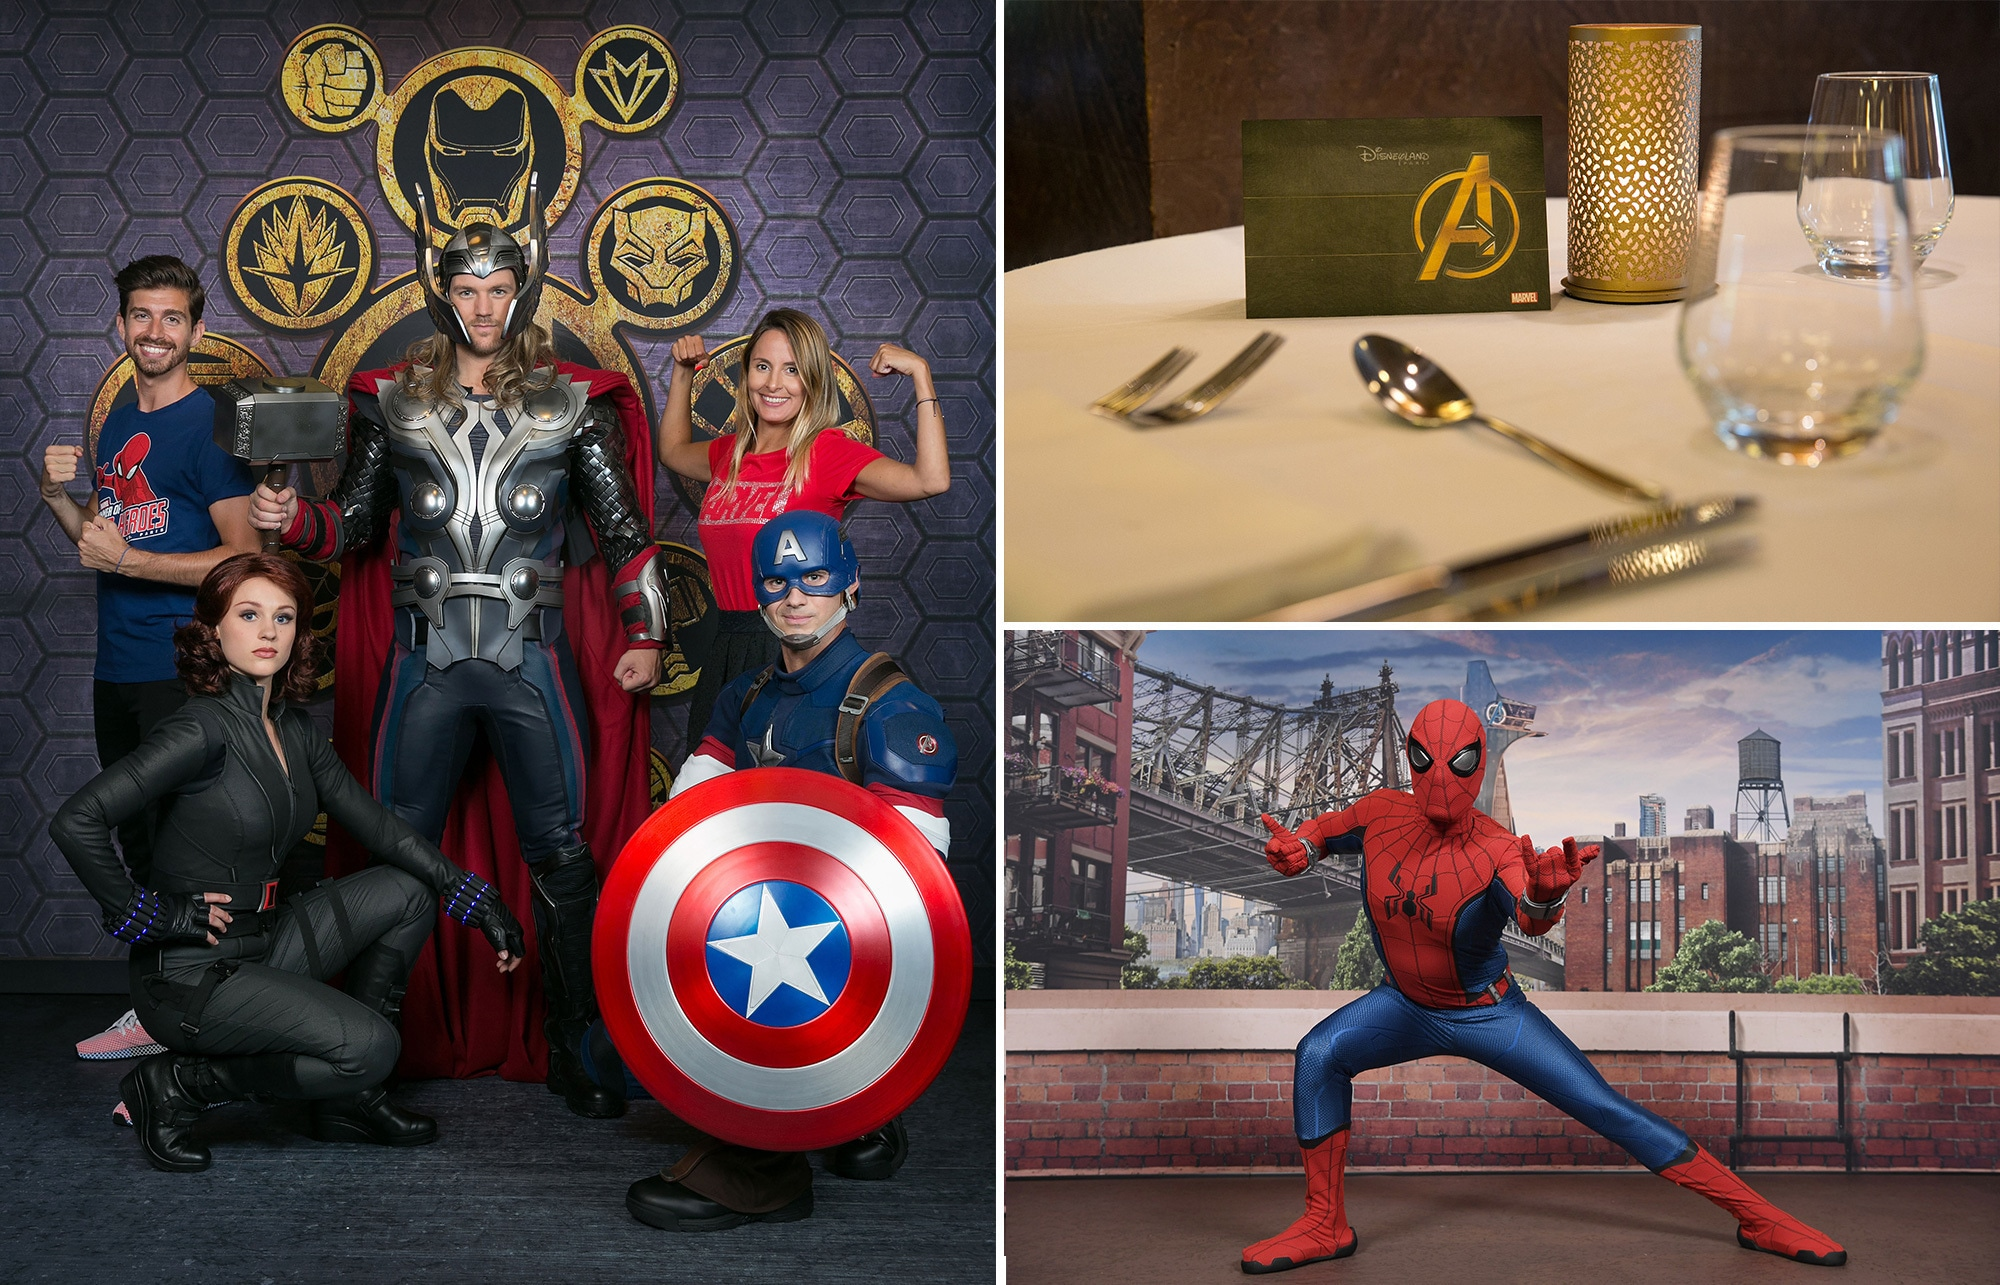 Guests taking a photo opportunity with Thor, Captain America and Black Widow